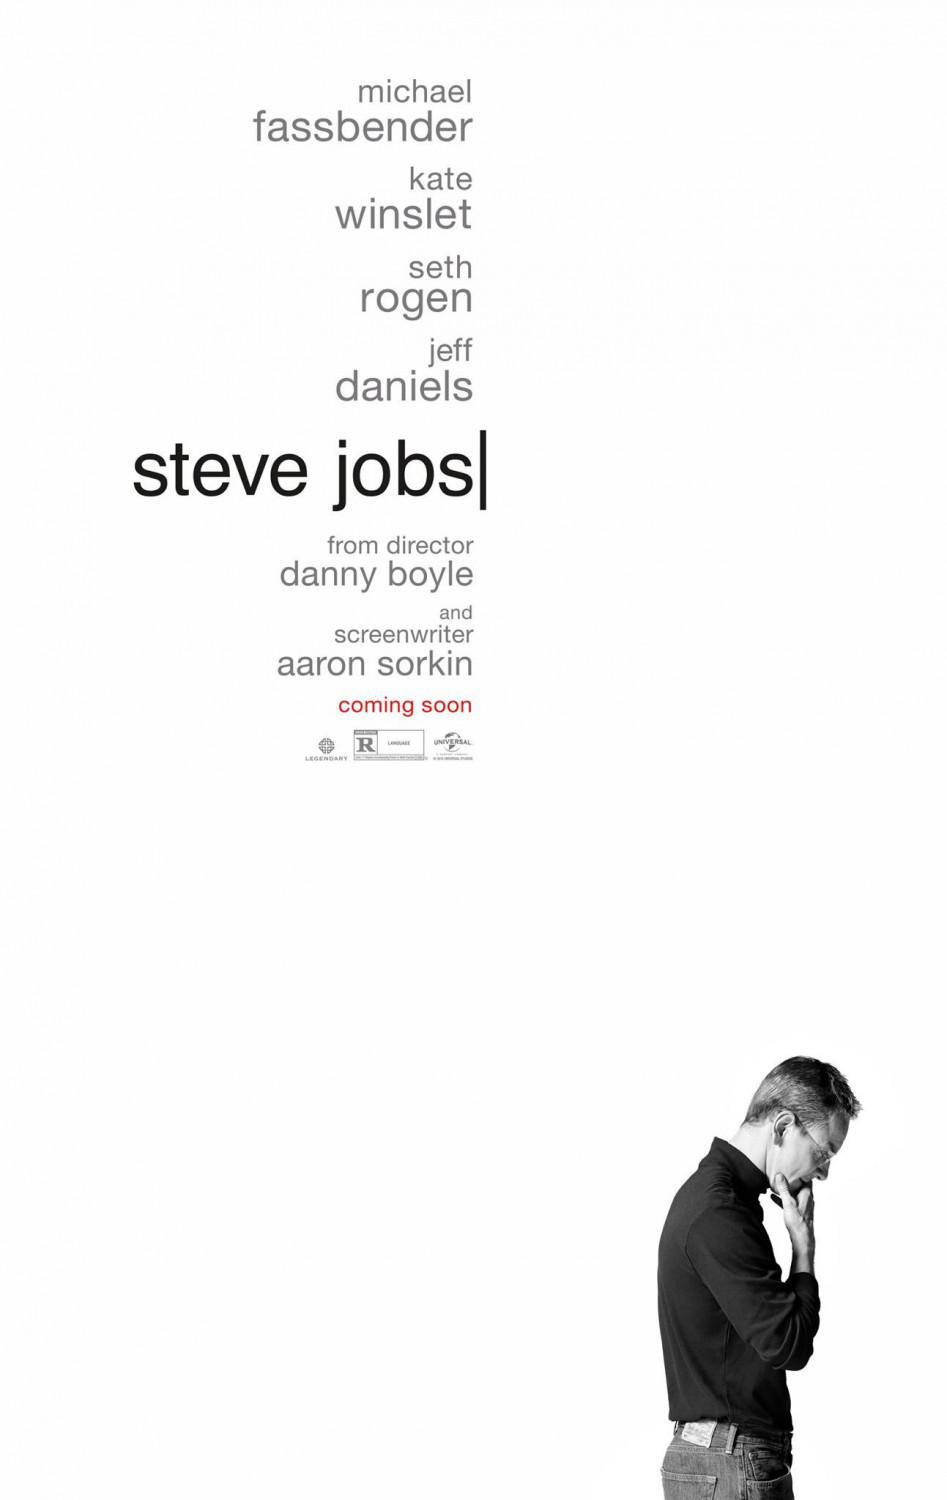 Steve Jobs - film biography - Michael Fassbender - Kate Winslet - Seth Rogen - Jeff Daniels - poster